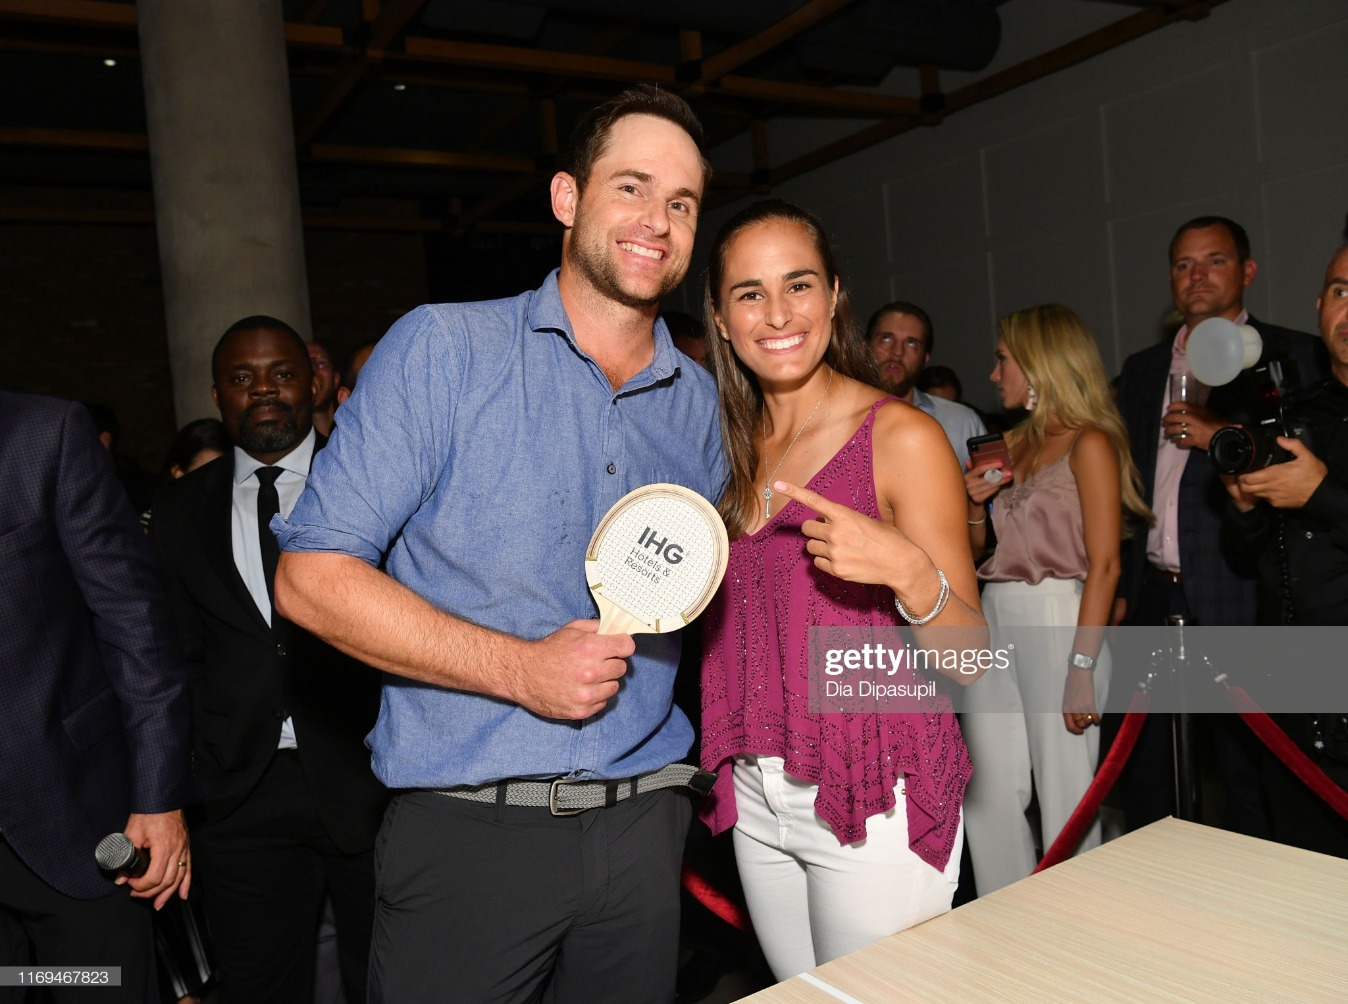 """Andy Roddick, Monica Puig And Leon Bridges Excite The Crowd With An Epic Table Tennis Match And Performance During The IHG Hotels & Resorts """"Legends, Unmatched"""" Event At Kimpton Hotel Eventi : News Photo"""